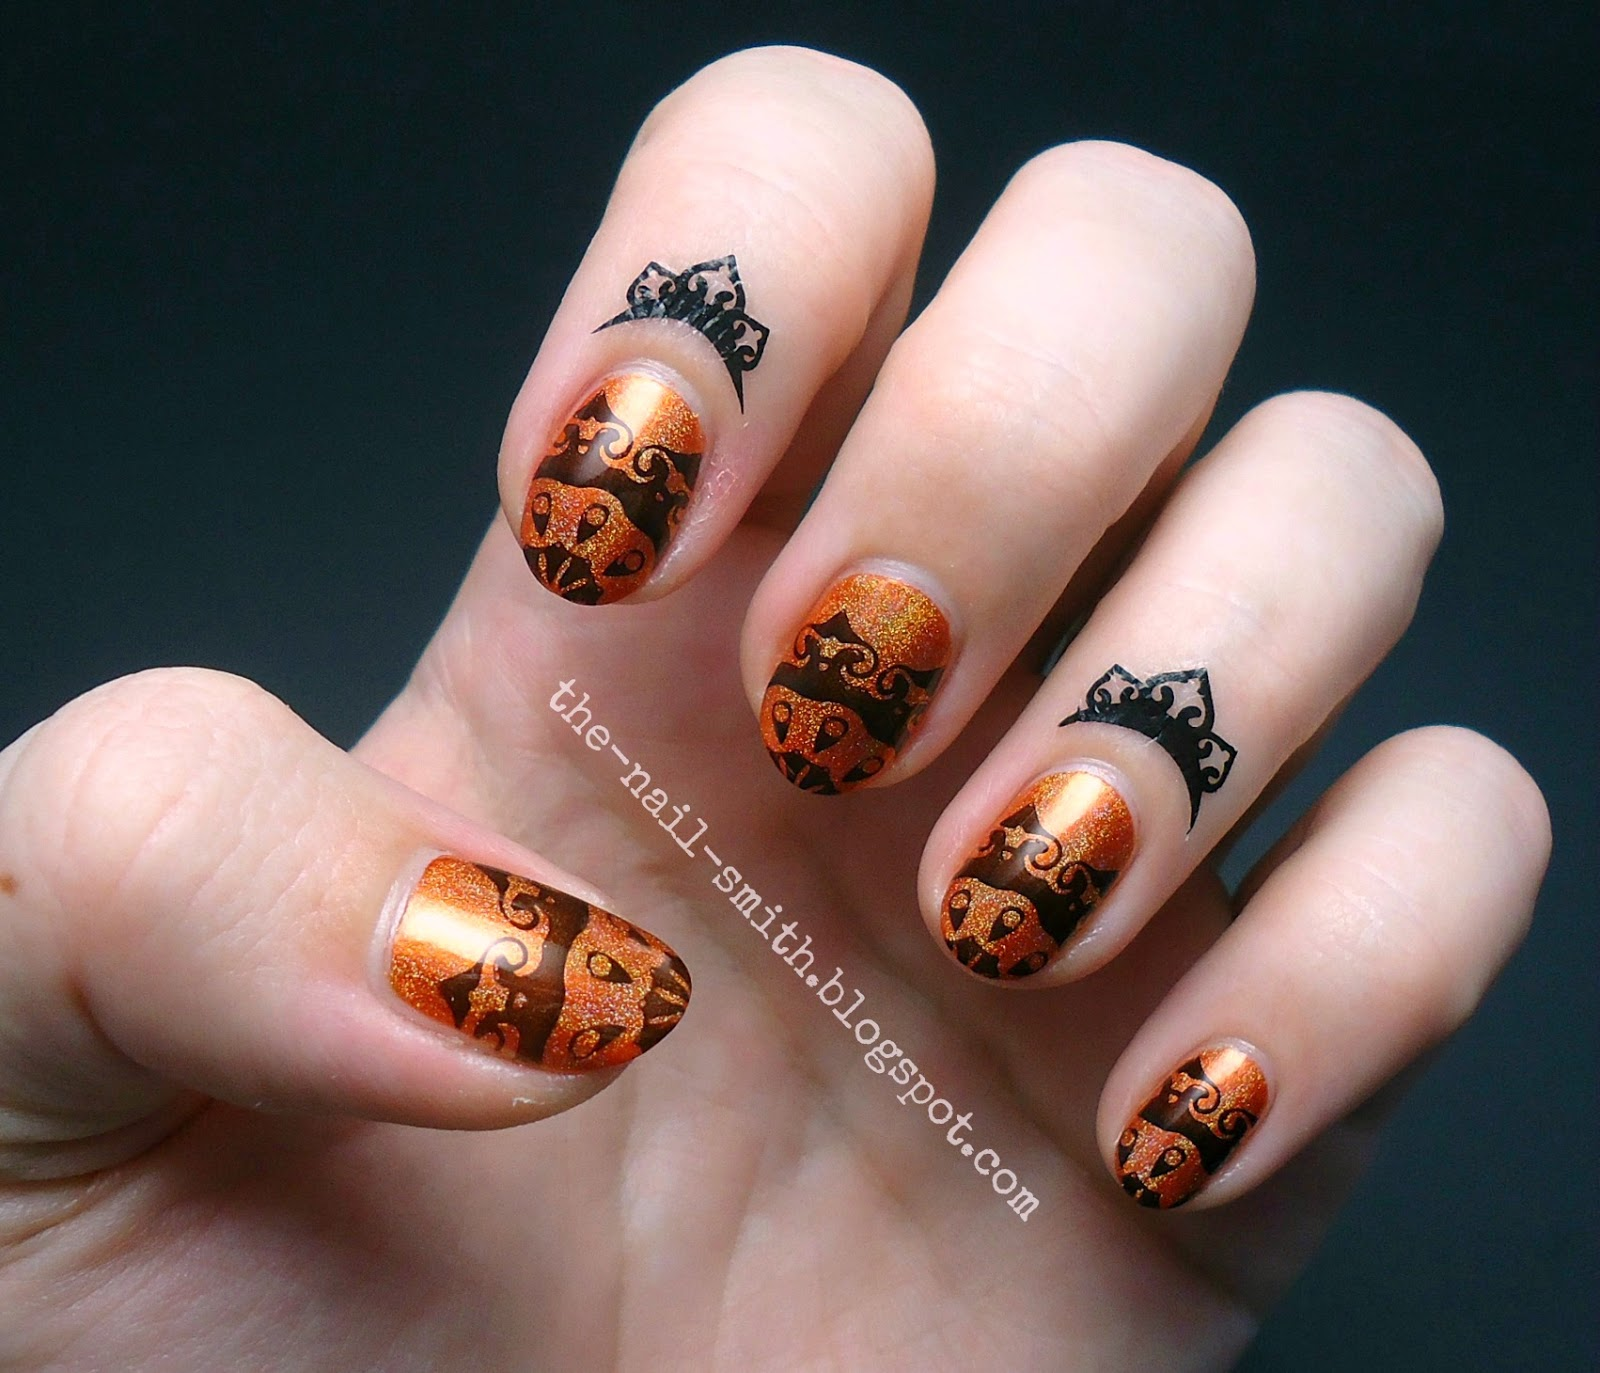 The Name Of This Item Is 1 Sheet Cuticle Tattoo Nail Art Stickers Water Transfer Temporary Decals Lace Flower Patterns In Design Nct 006 And Can Be Found